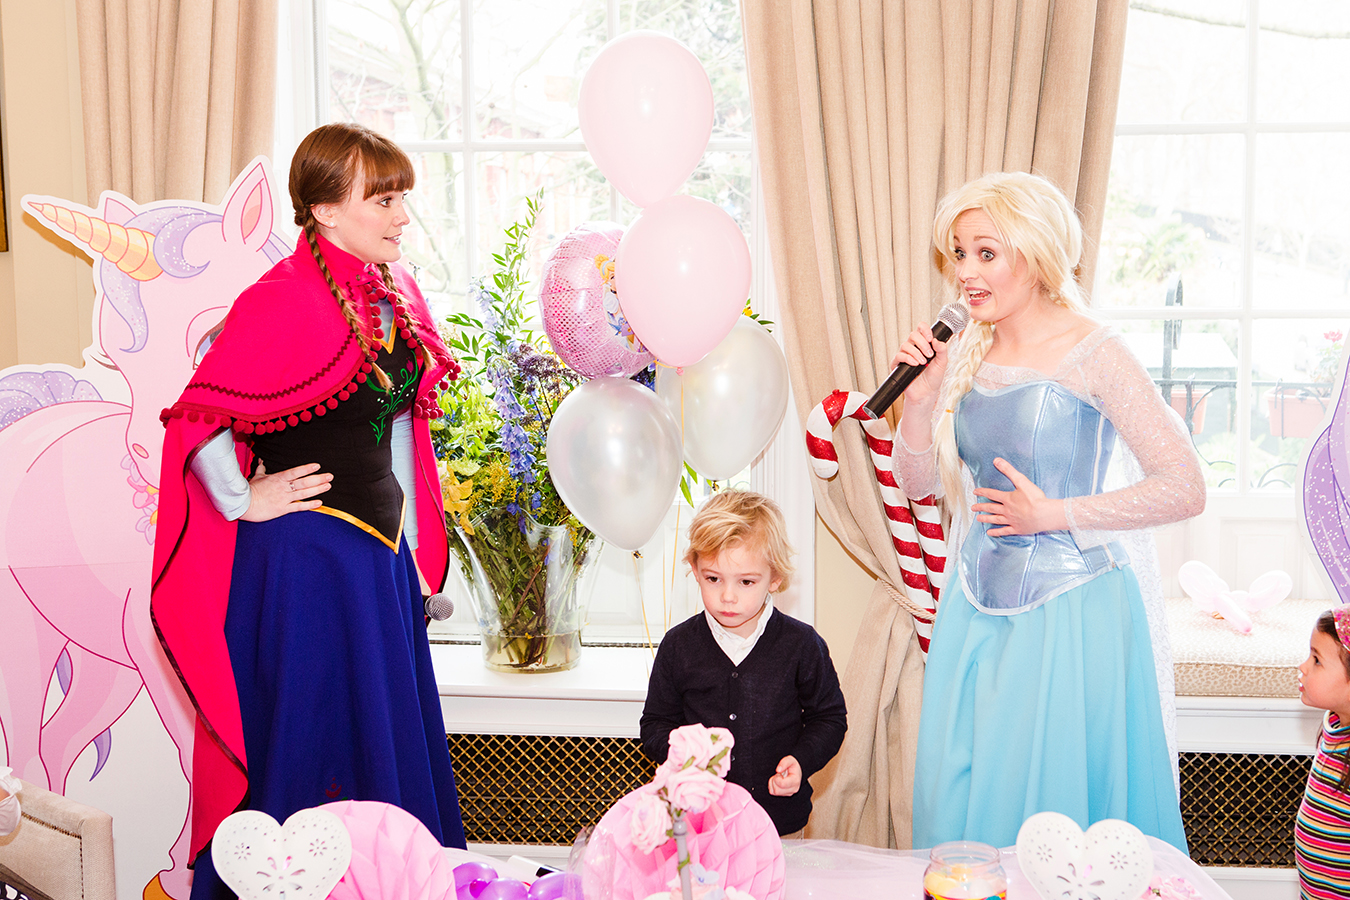 Childrens Entertainers In London - Childrens birthday party ideas in london